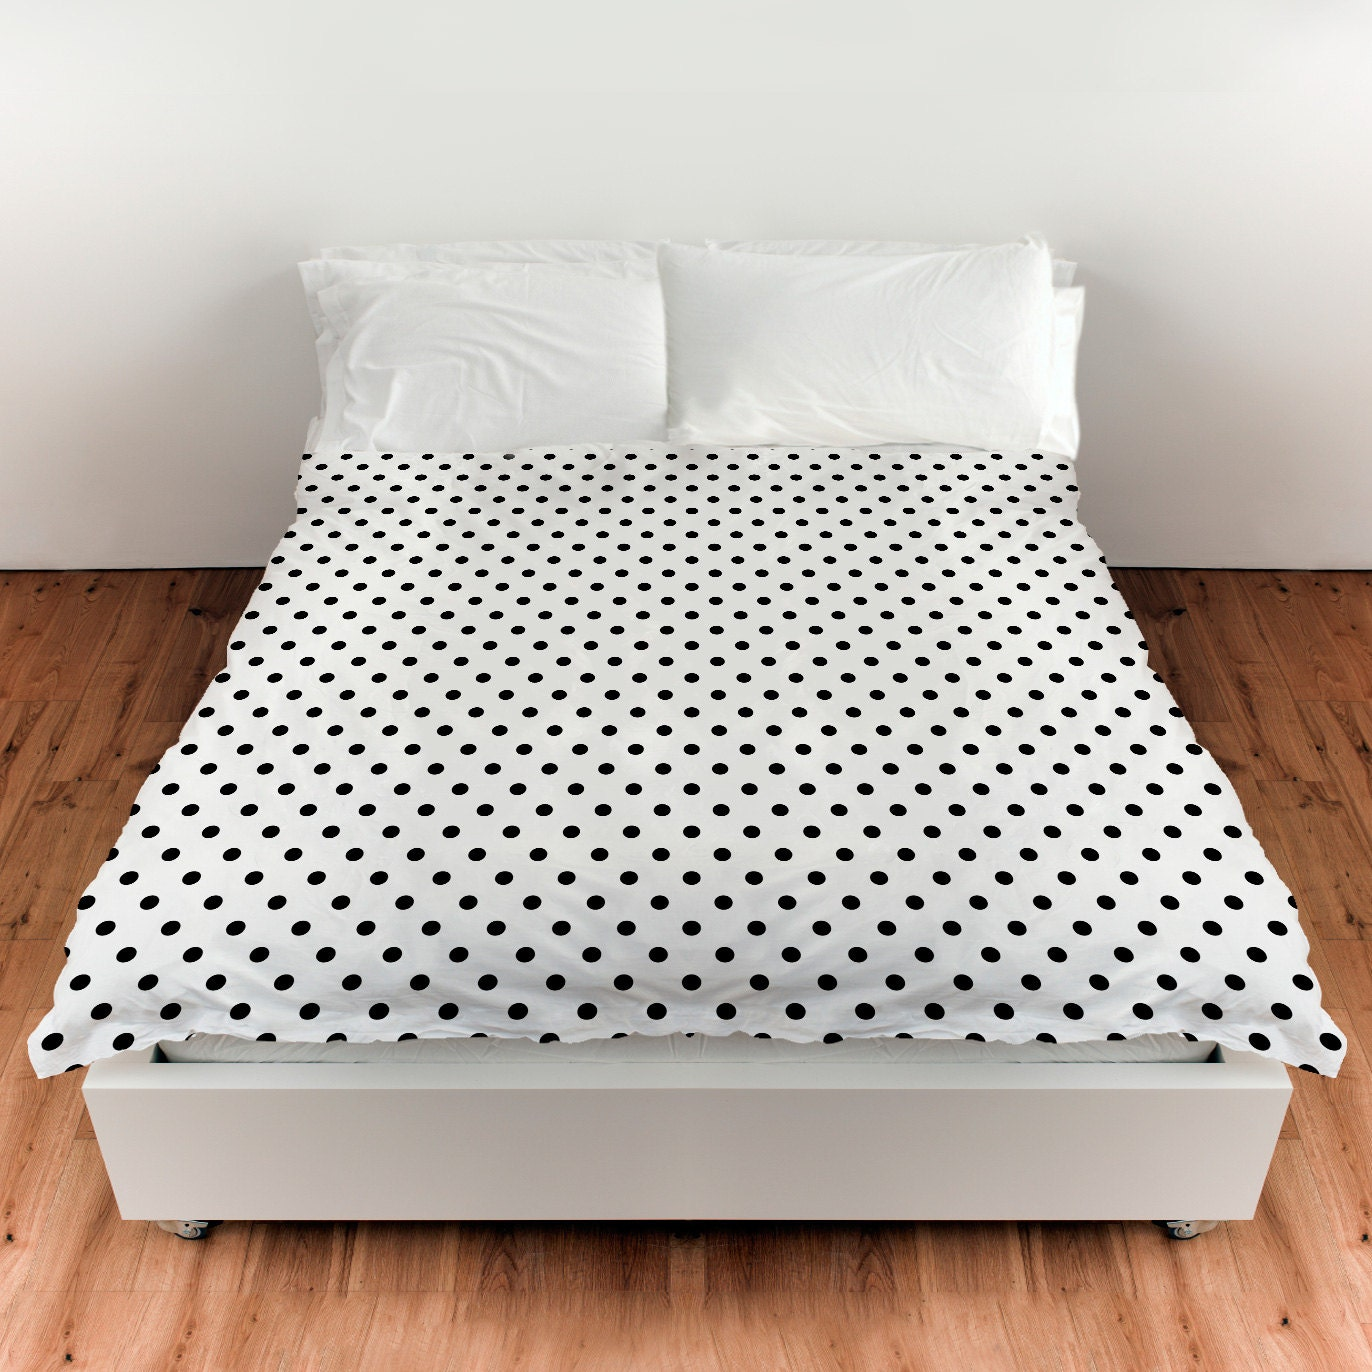 polka dot white and black duvet cover comforter cover 3. Black Bedroom Furniture Sets. Home Design Ideas